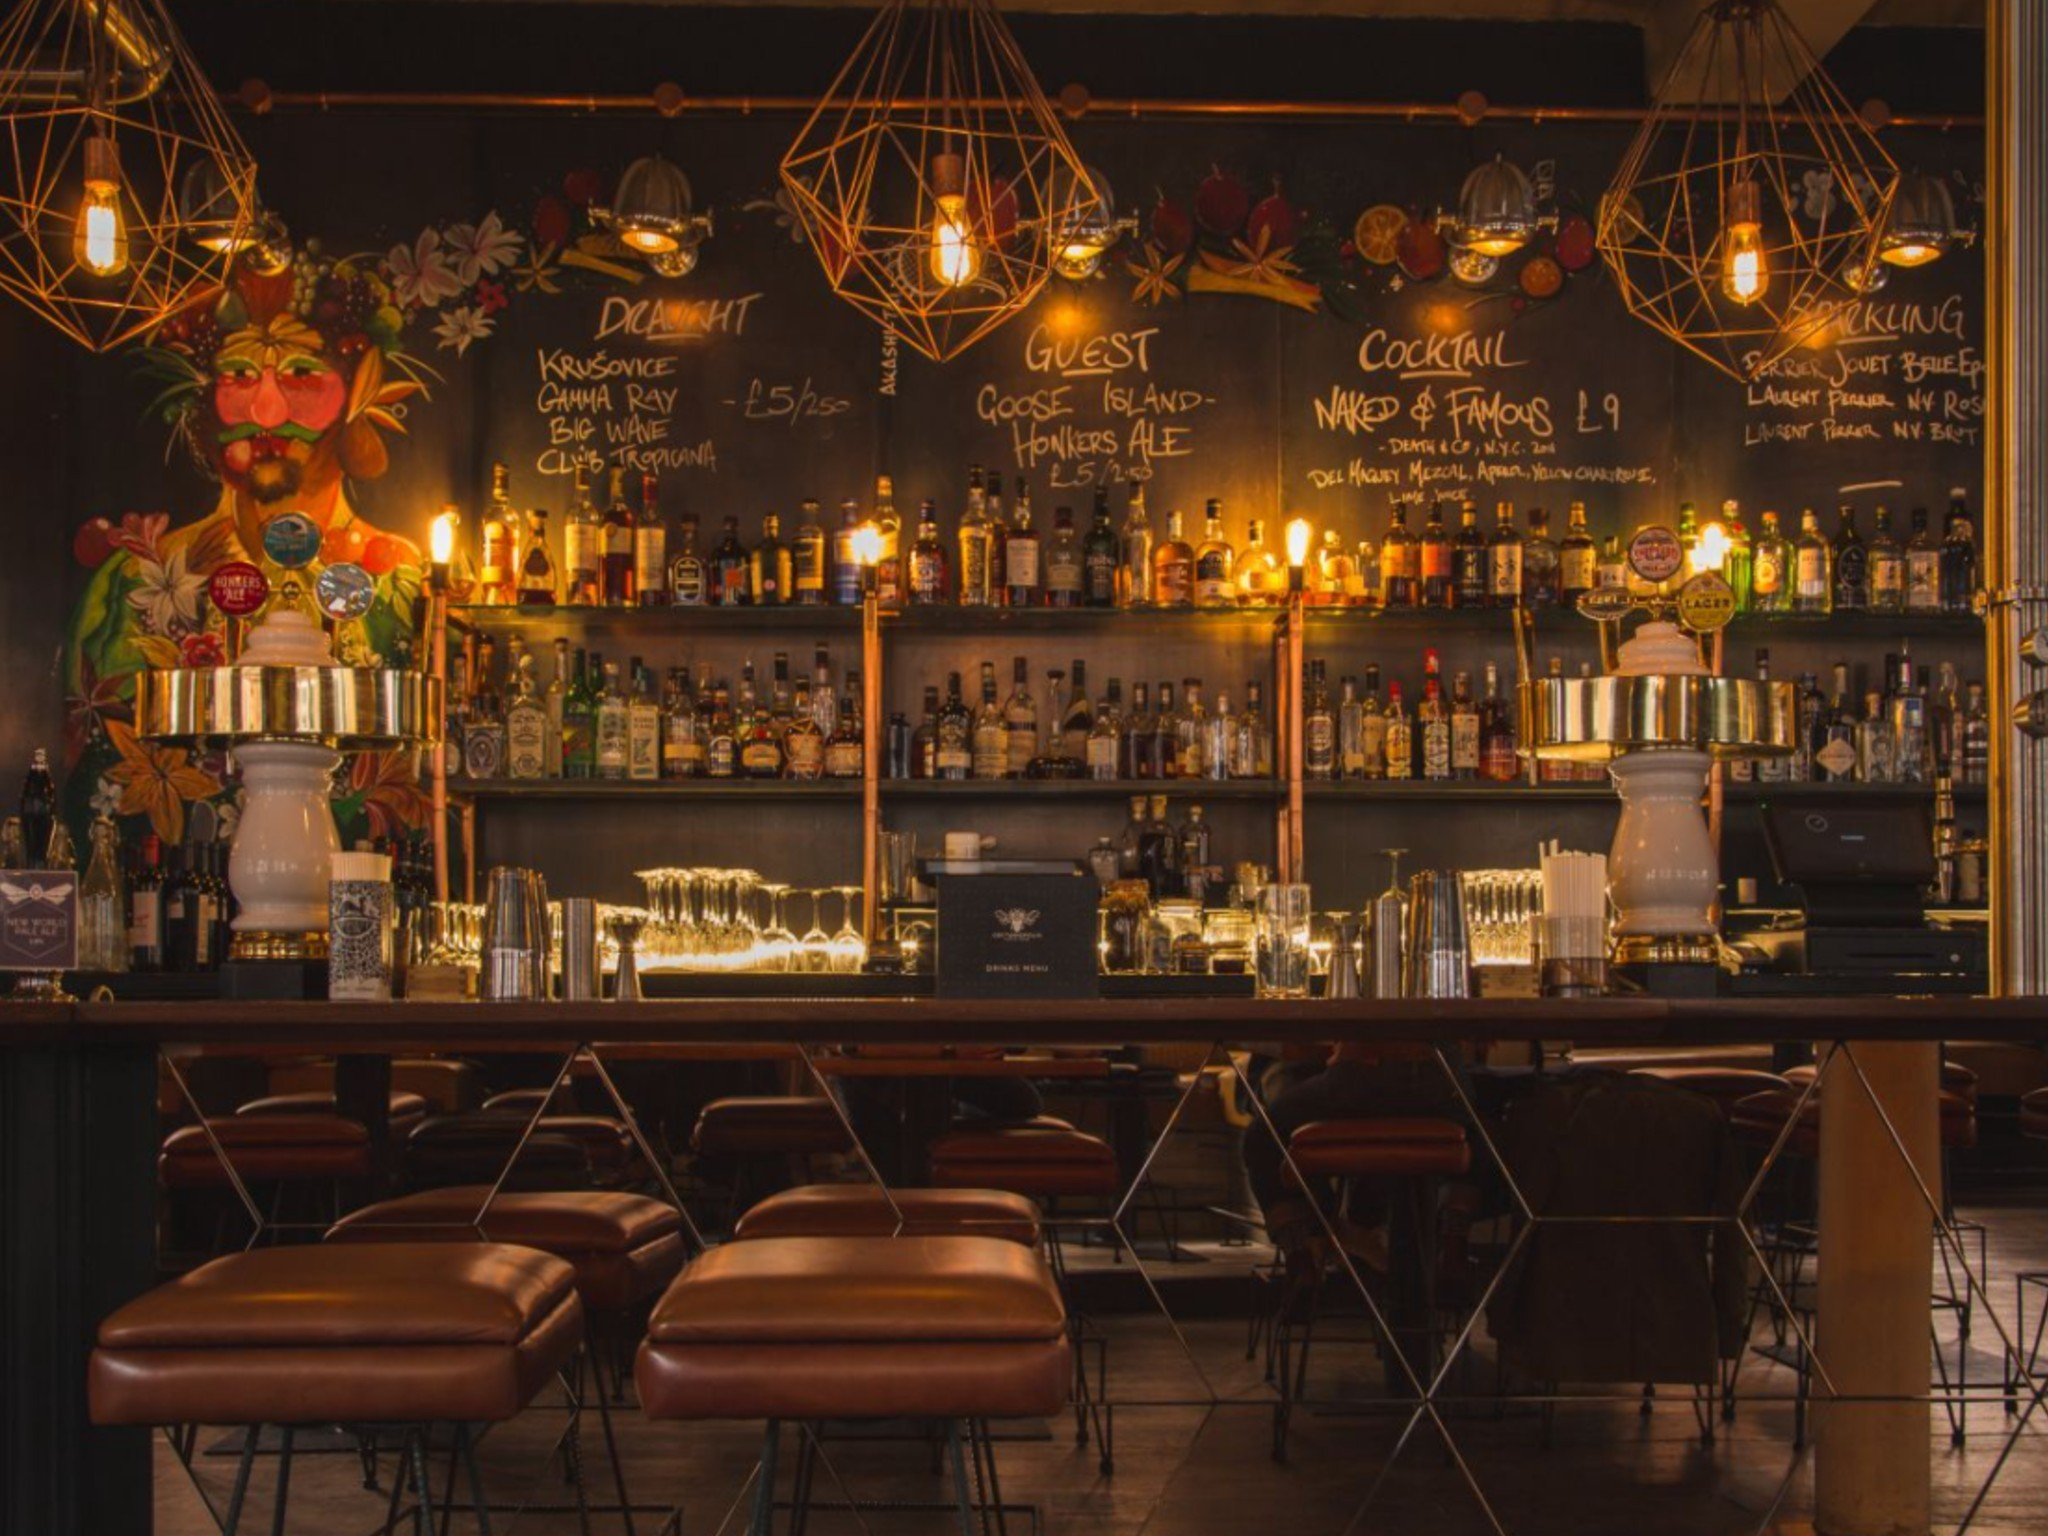 A dimly lit bar with a selection of bottles